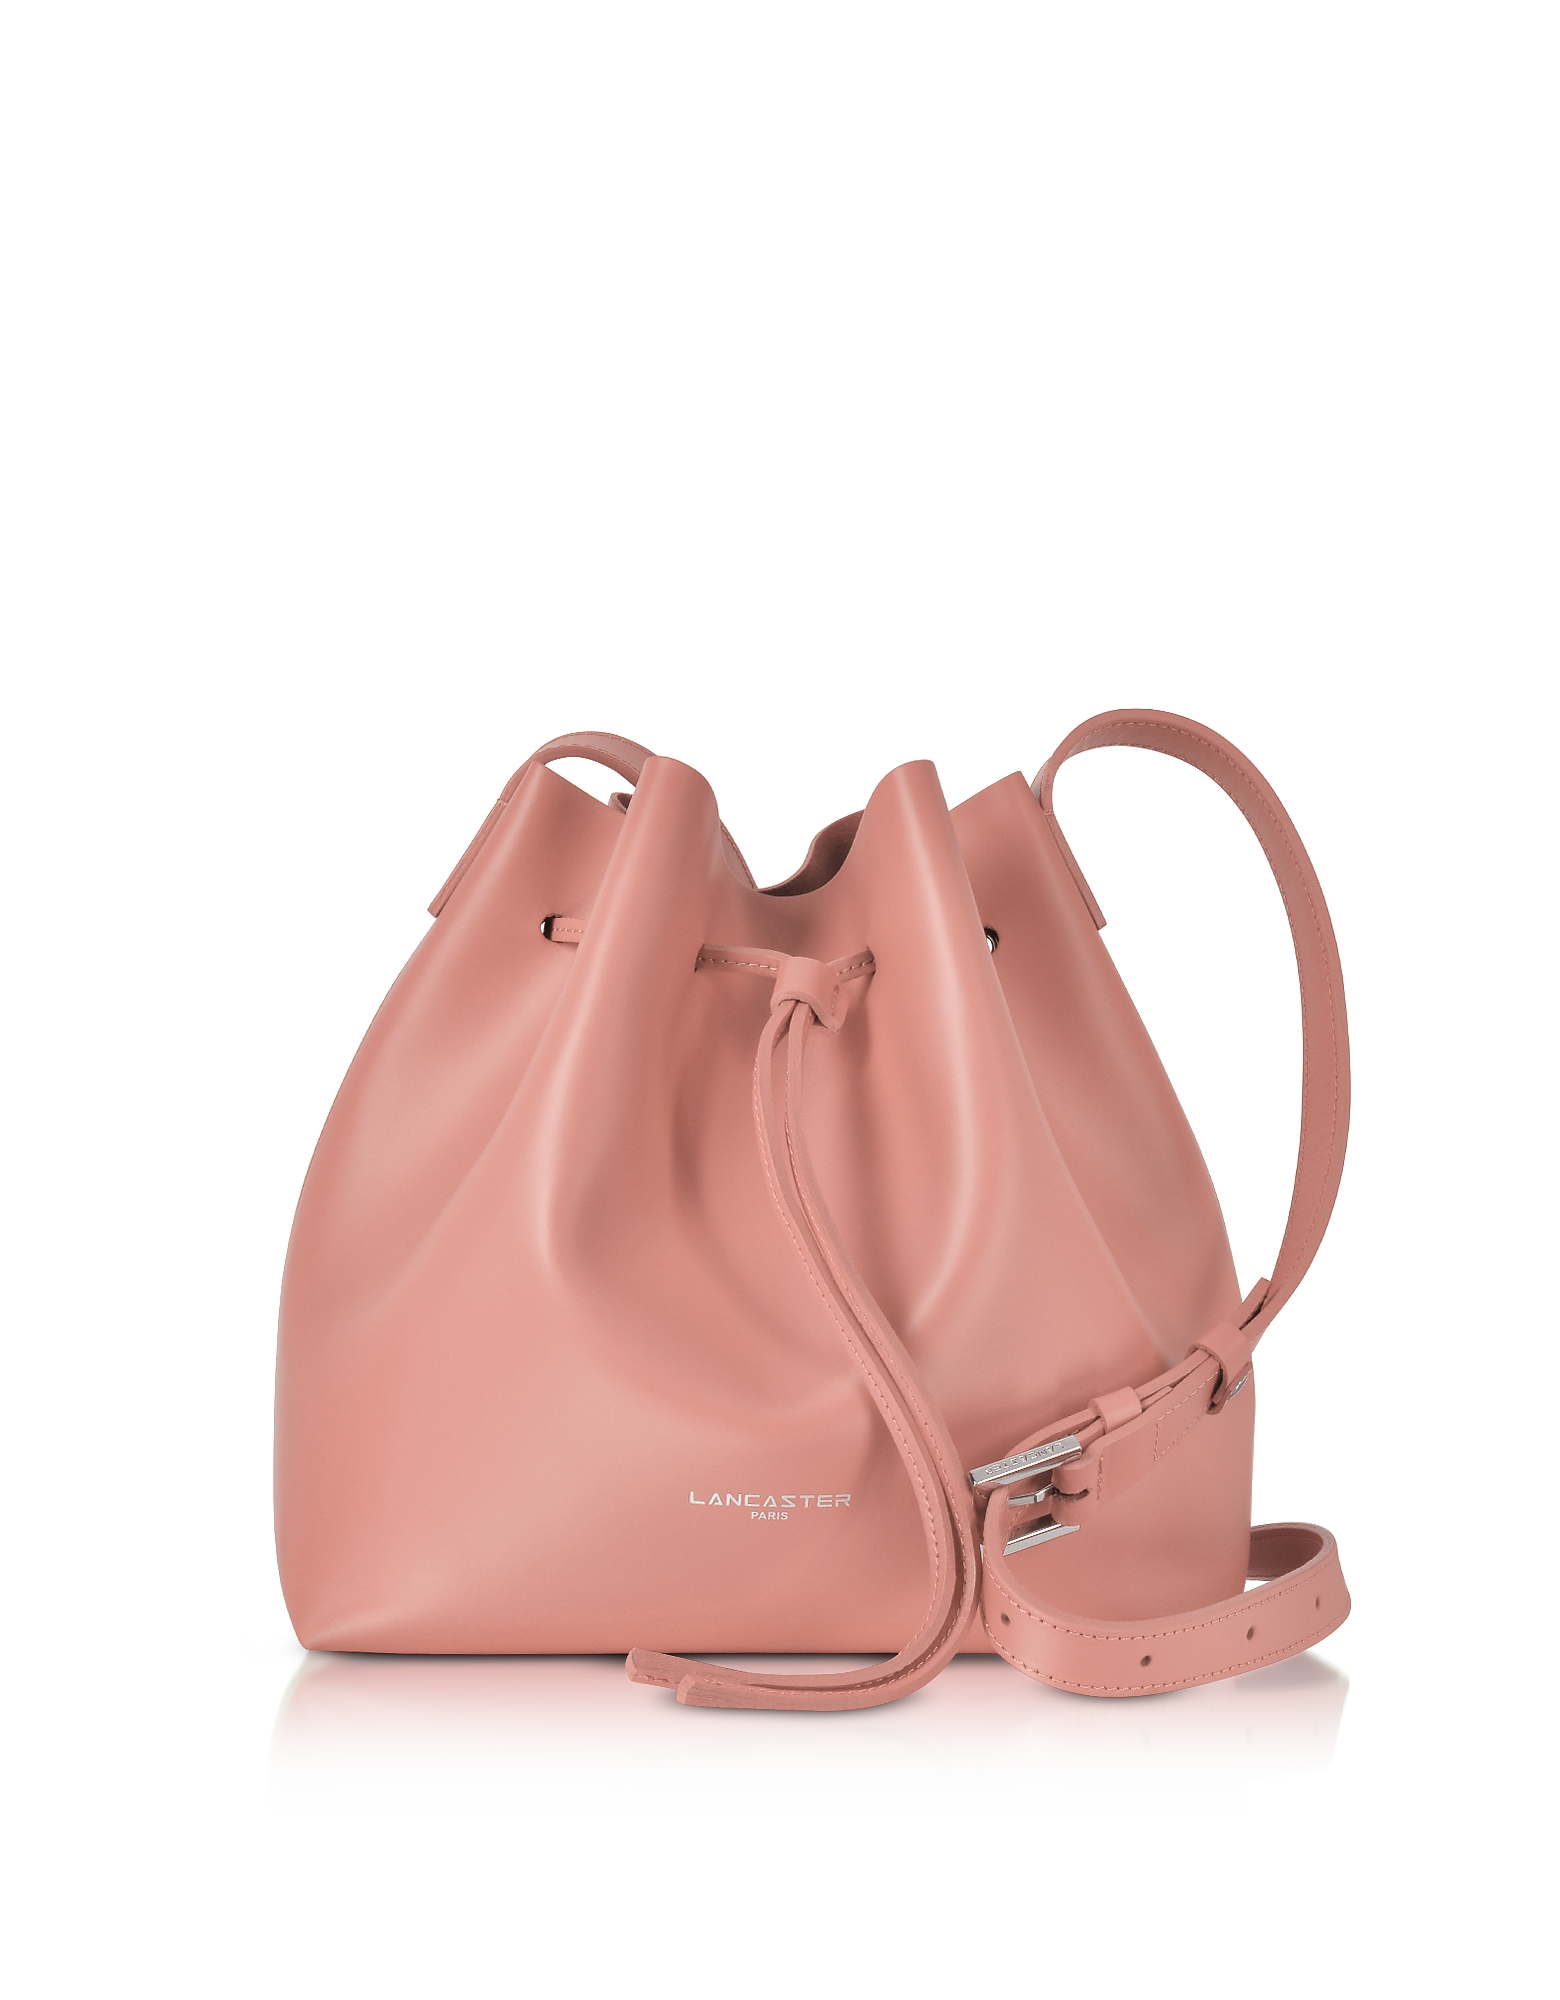 Lancaster Paris Handbags, Pur & Element Smooth Leather Small Bucket Bag